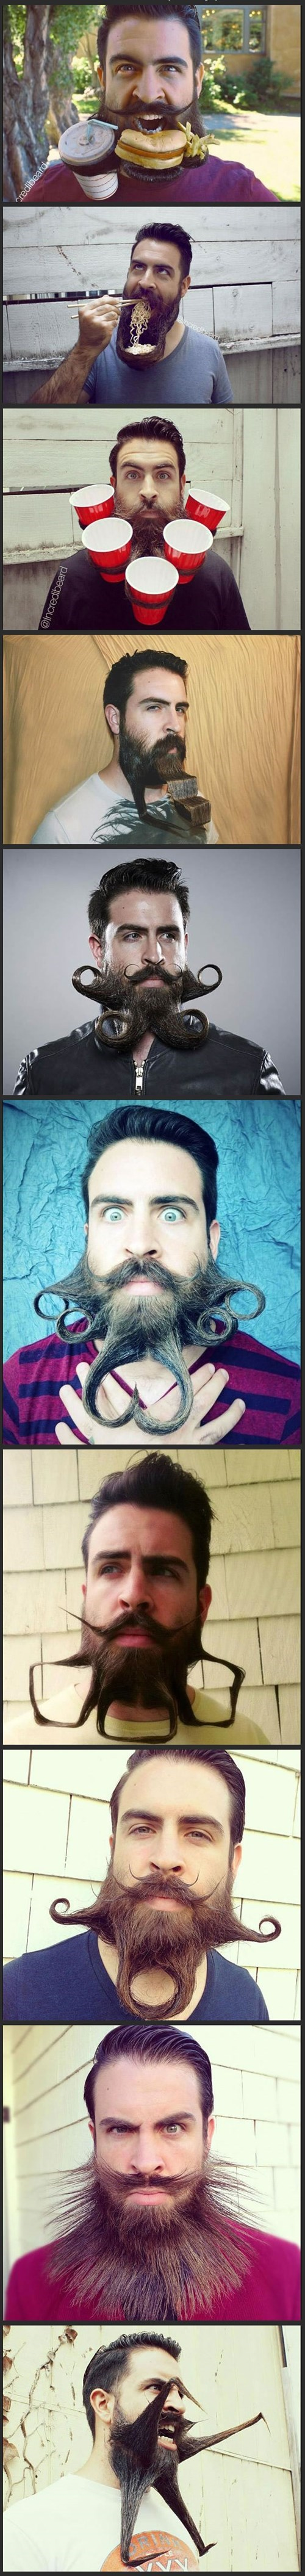 incredibeard,no shave november